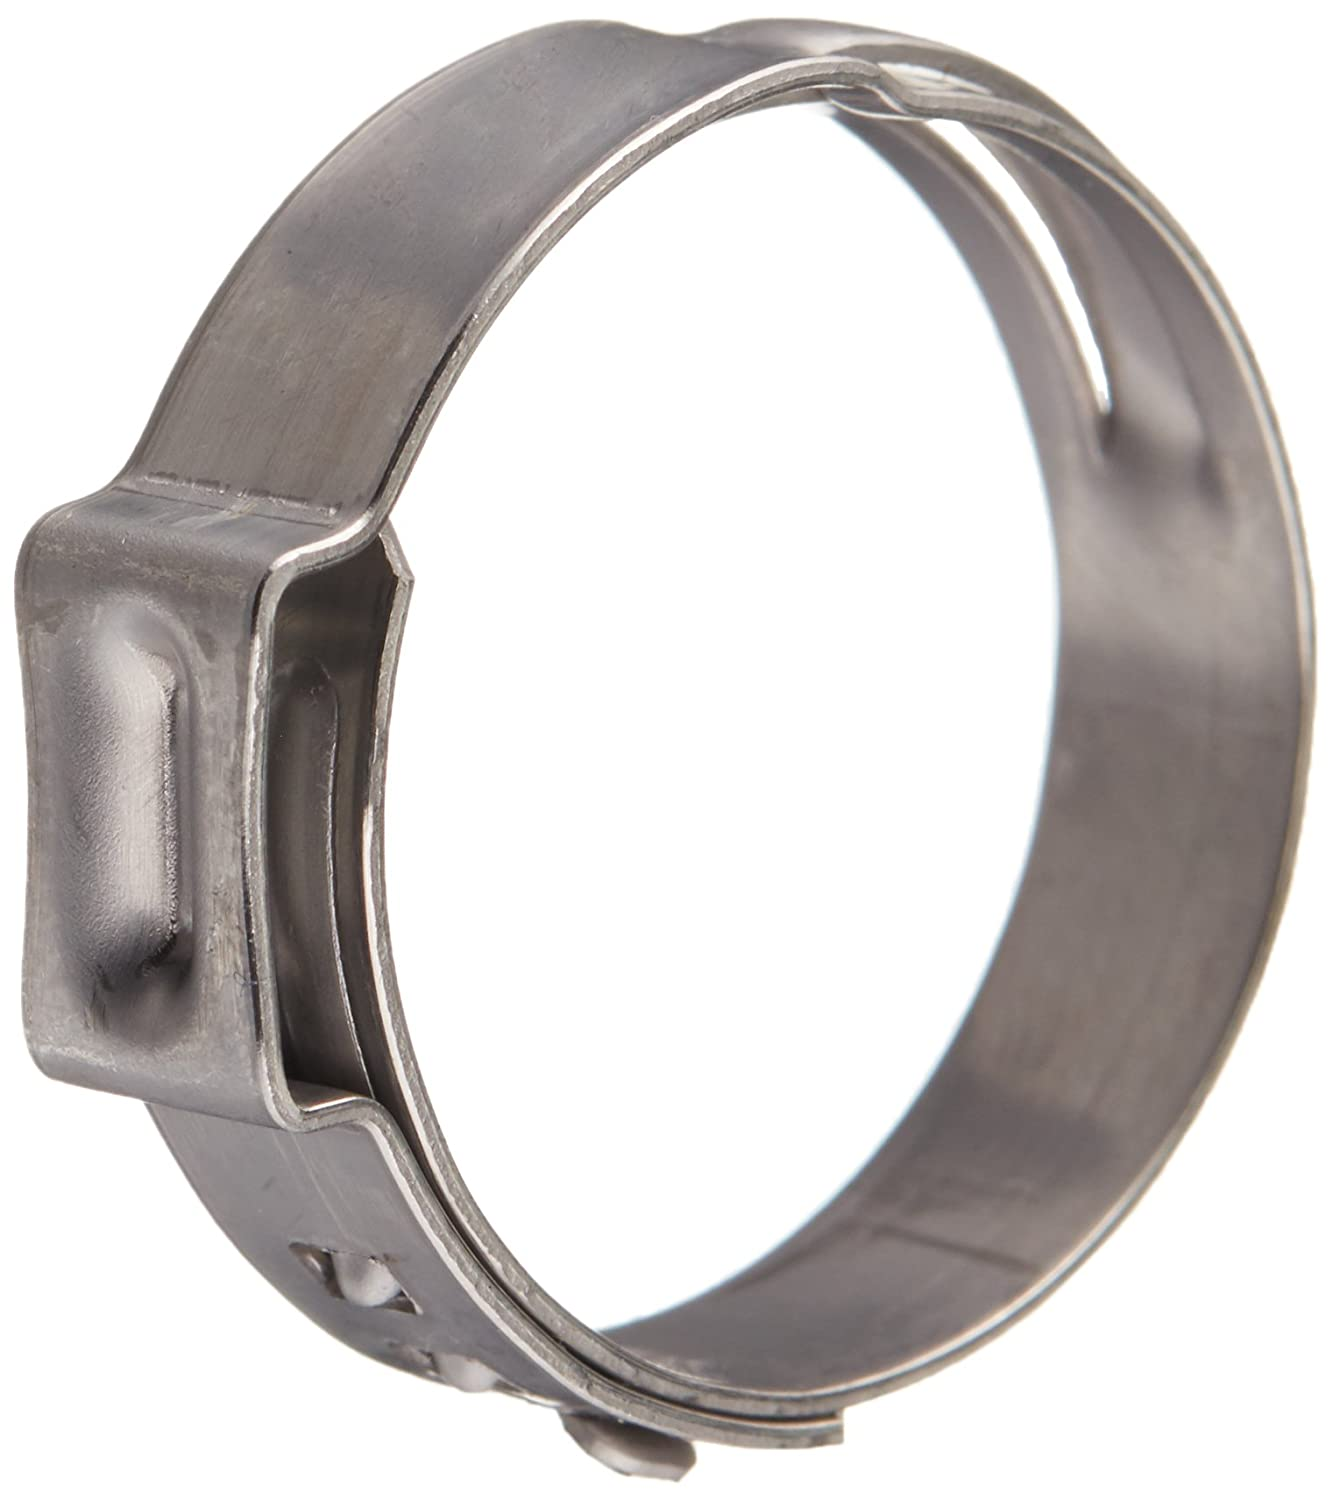 US SHIP 10 PCS Stainless Steel Ear Clamp Stepless Ring Crimp Pinch Auto 24.1mm